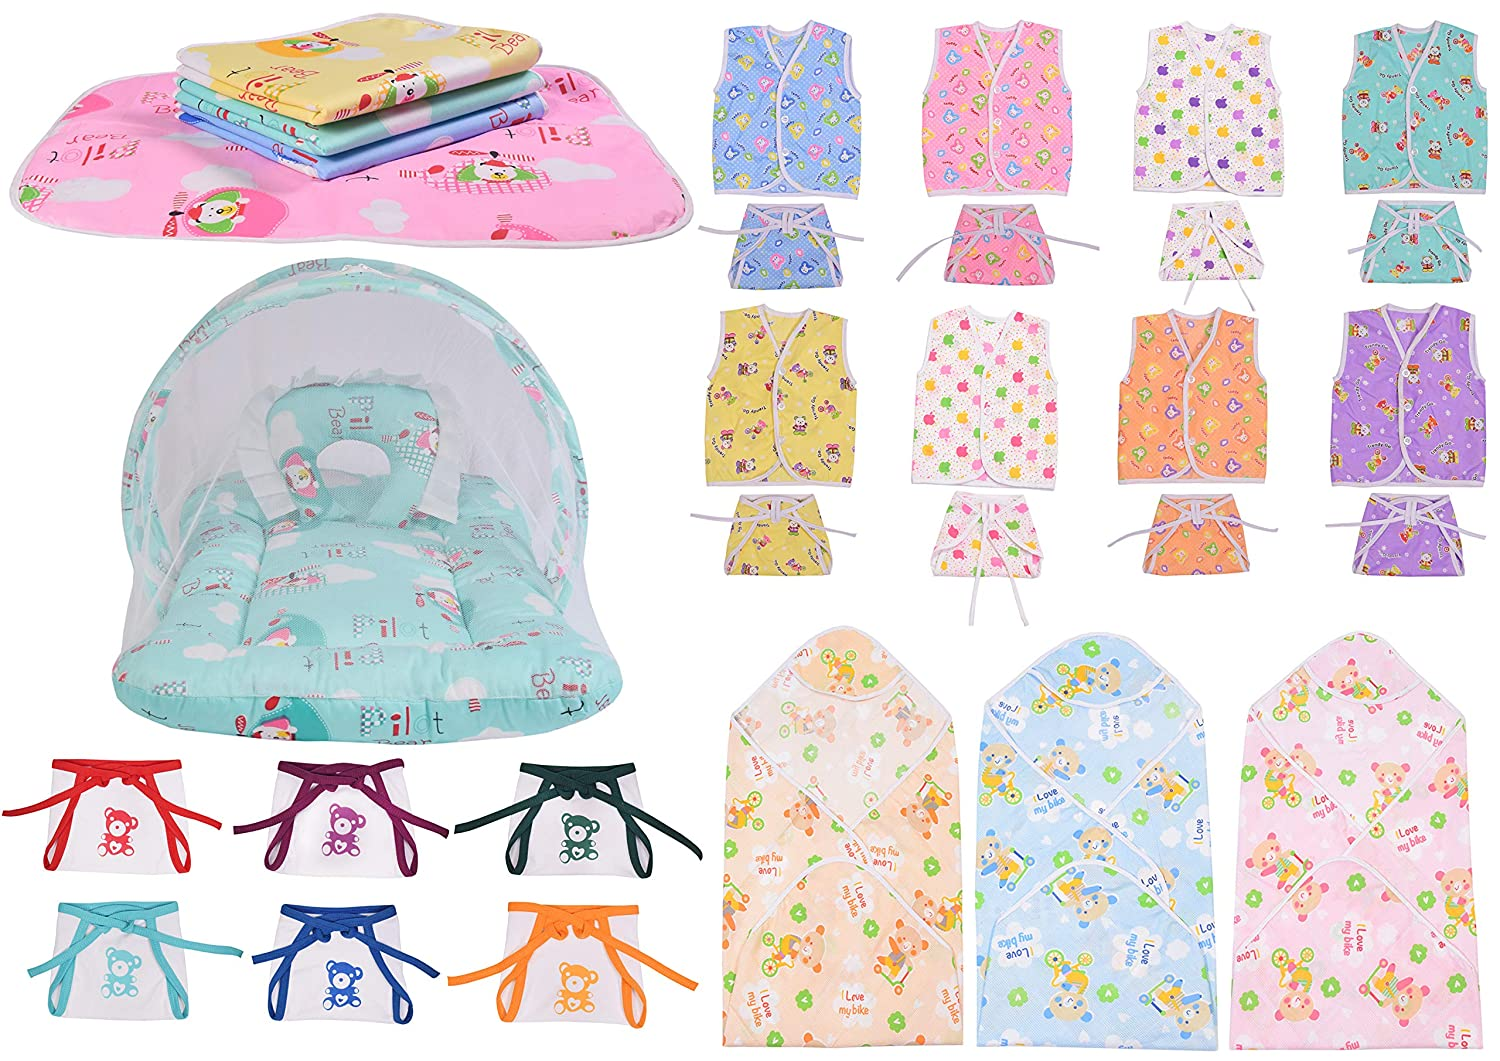 Baby Fly 6 Baby Hosiery Langot/Nappies with 1 Net Bed, 3 Baby Blankets, 4 Nappy Changing Sheets, 8 Cotton Jhabla Set and 8 Cotton Nappies for New Born Baby(0-6 Months)